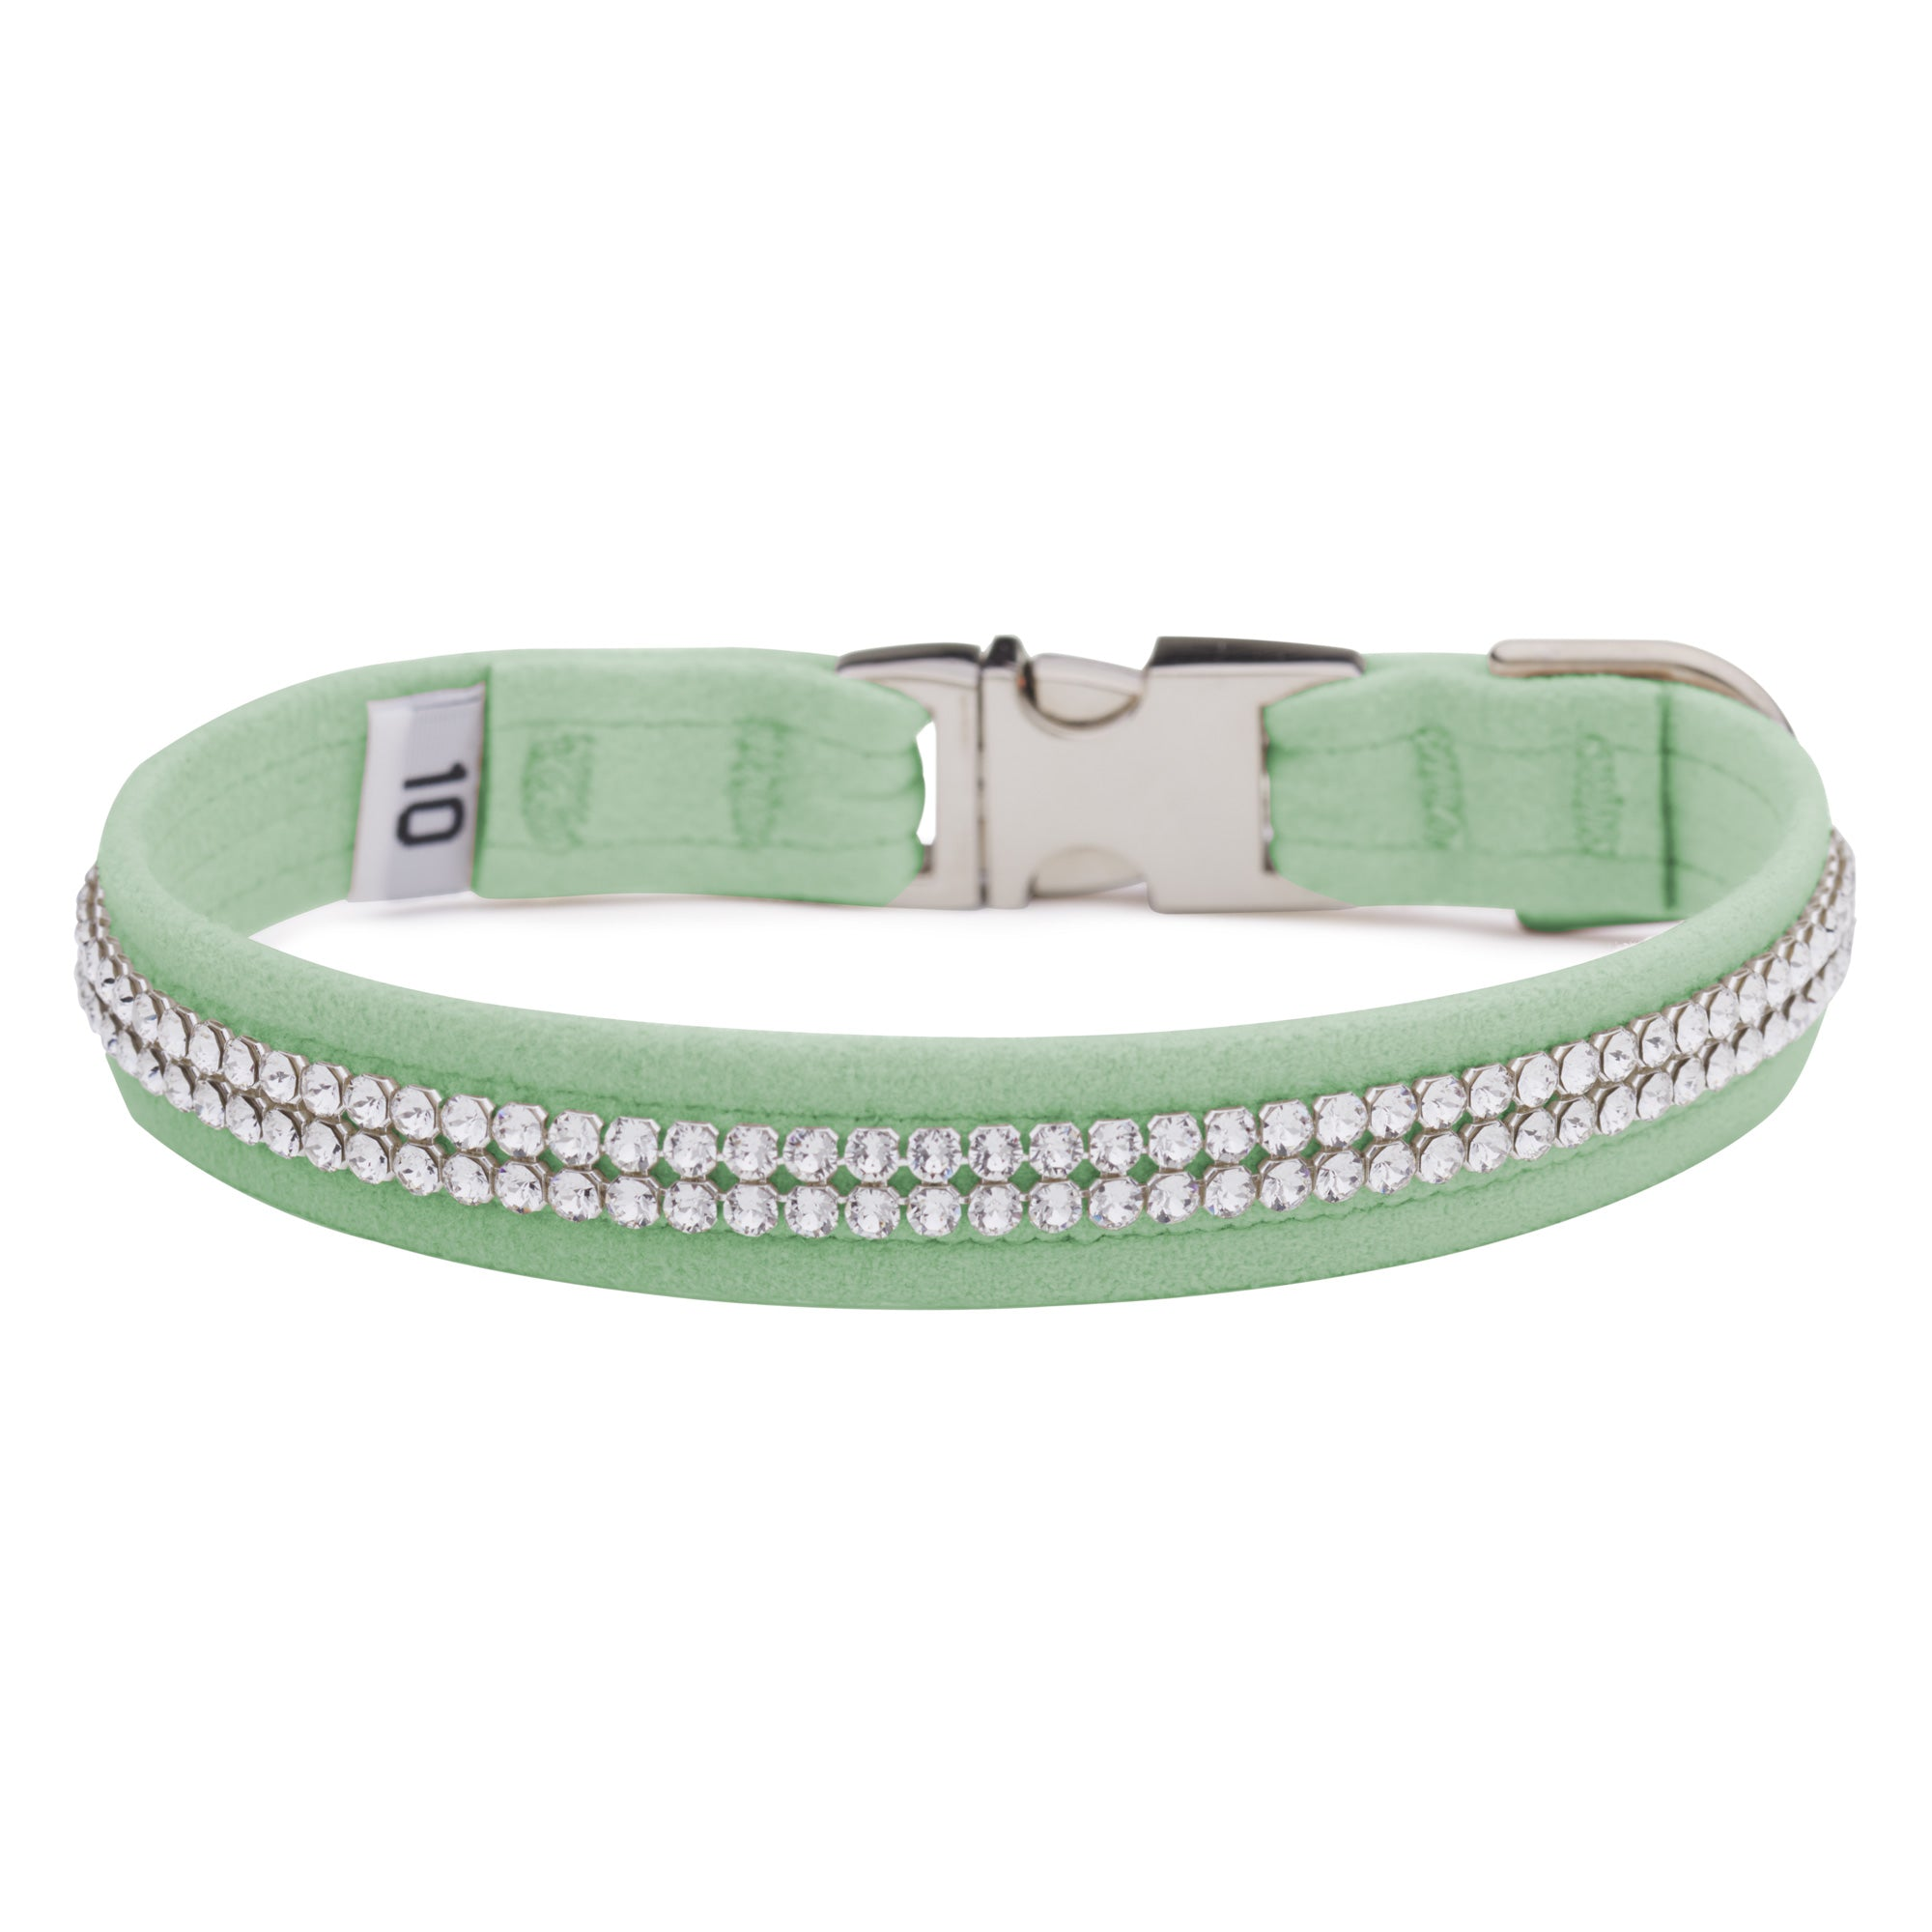 Mint 2 Row Giltmore Perfect Fit Collar